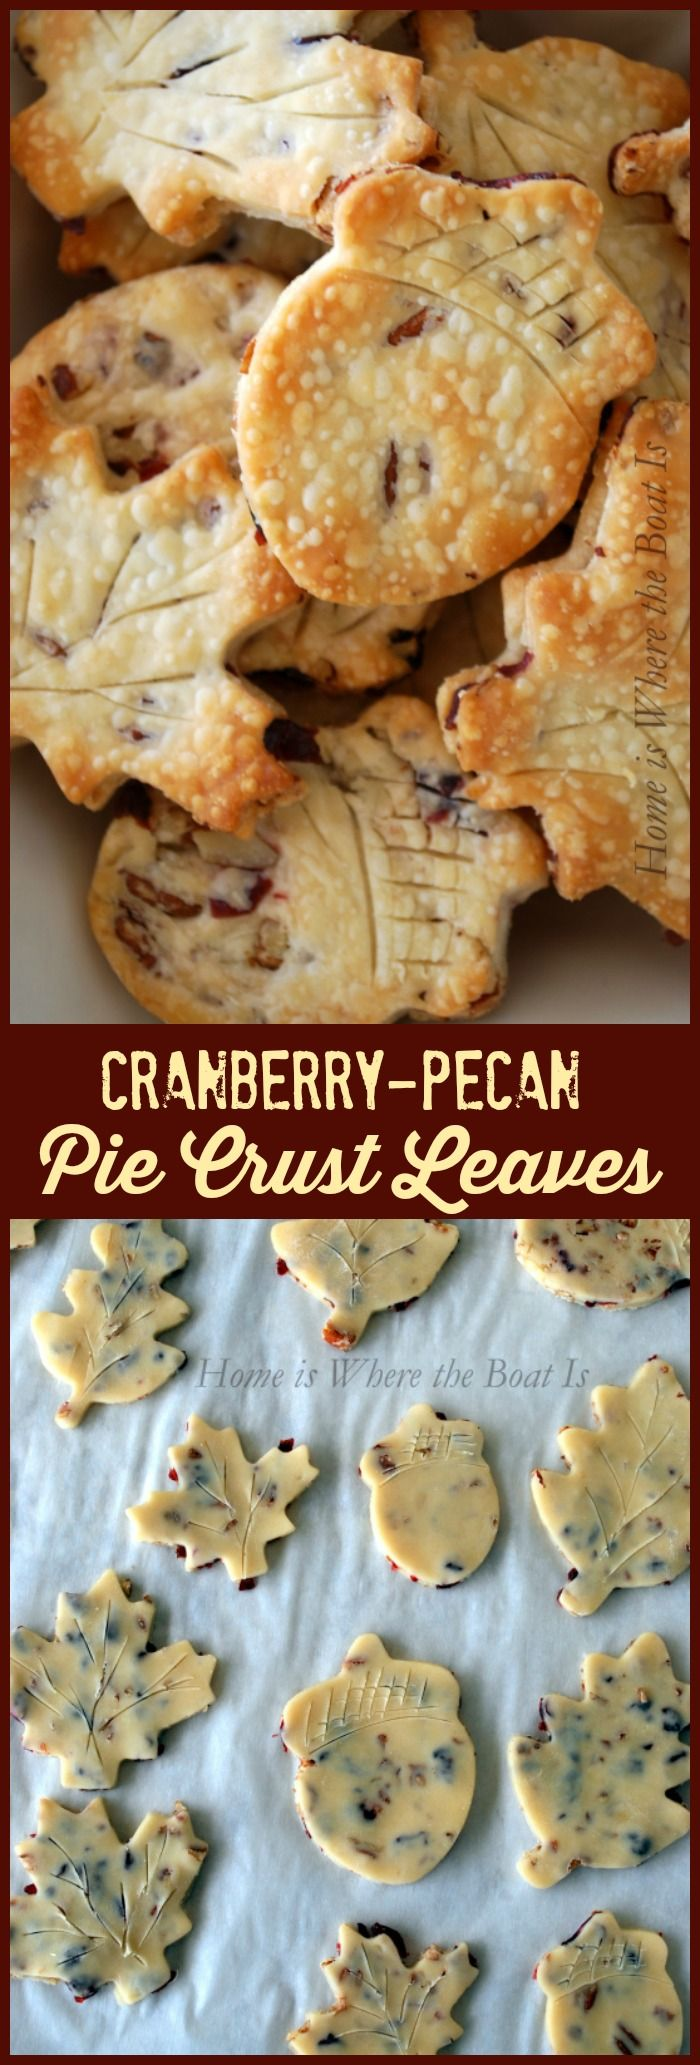 Cranberry-Pecan Pie Crust Leaves!